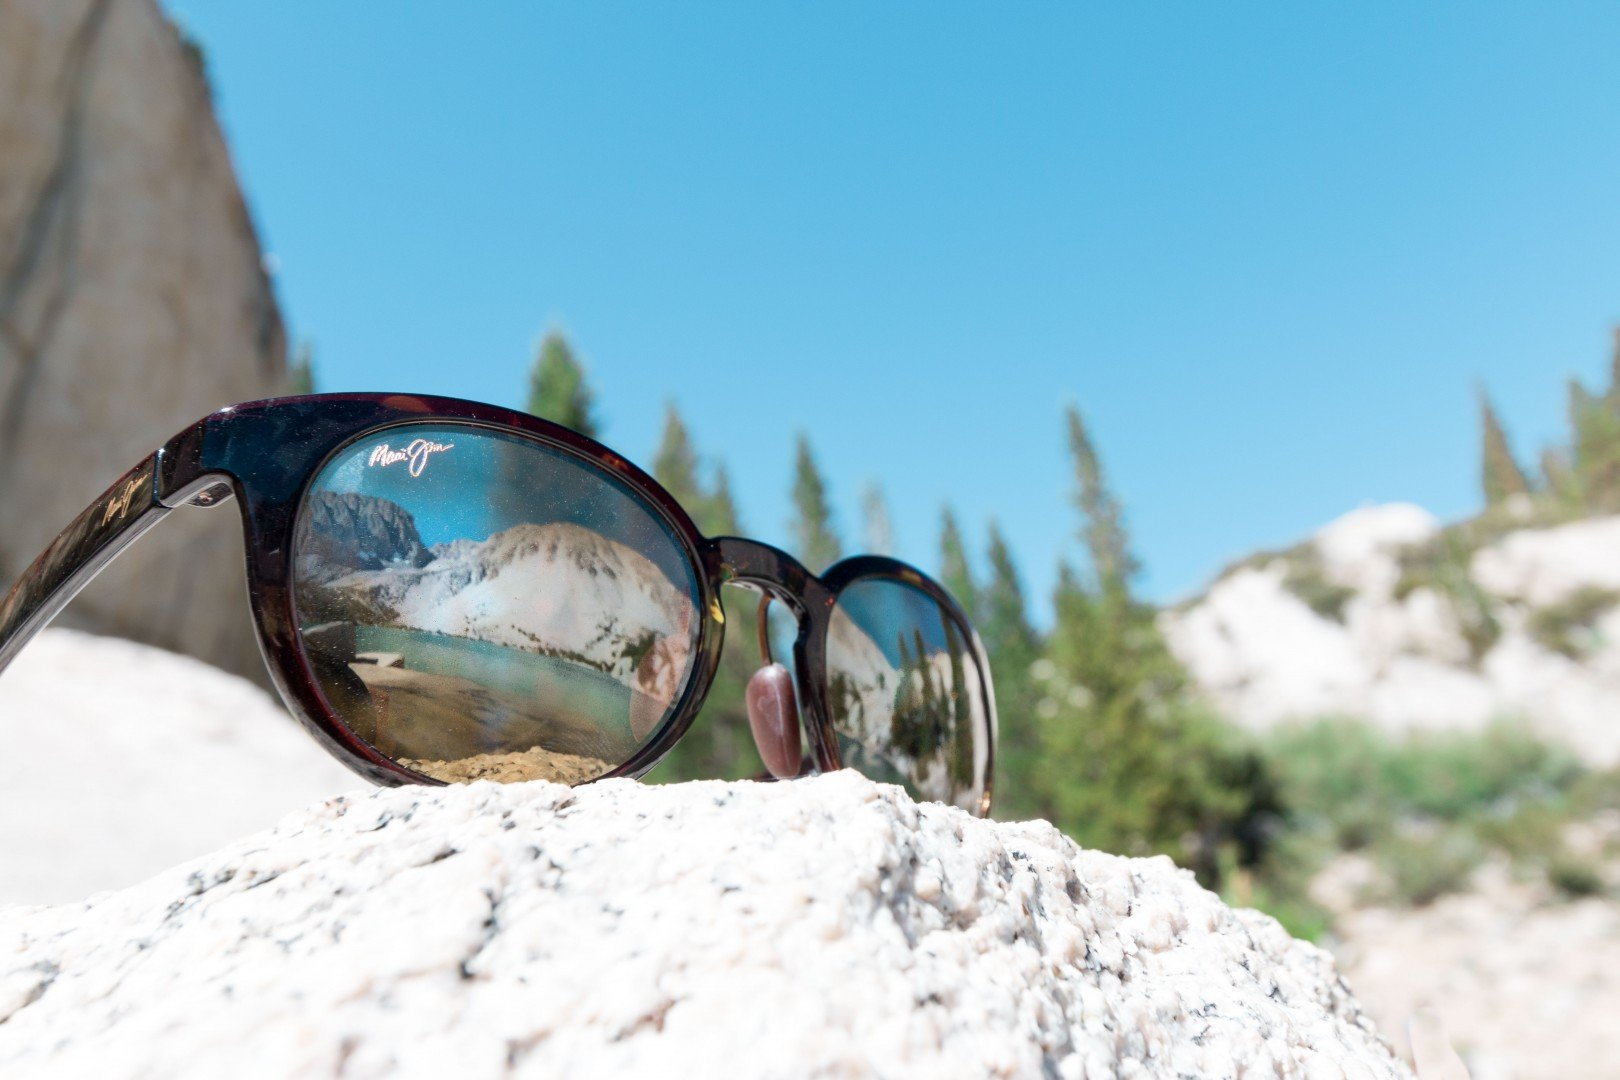 Maui-Jim-Sunglasses-in-What-to-pack-for-a-day-hike-California-Packing-List-Travel-Break.net-1-of-1